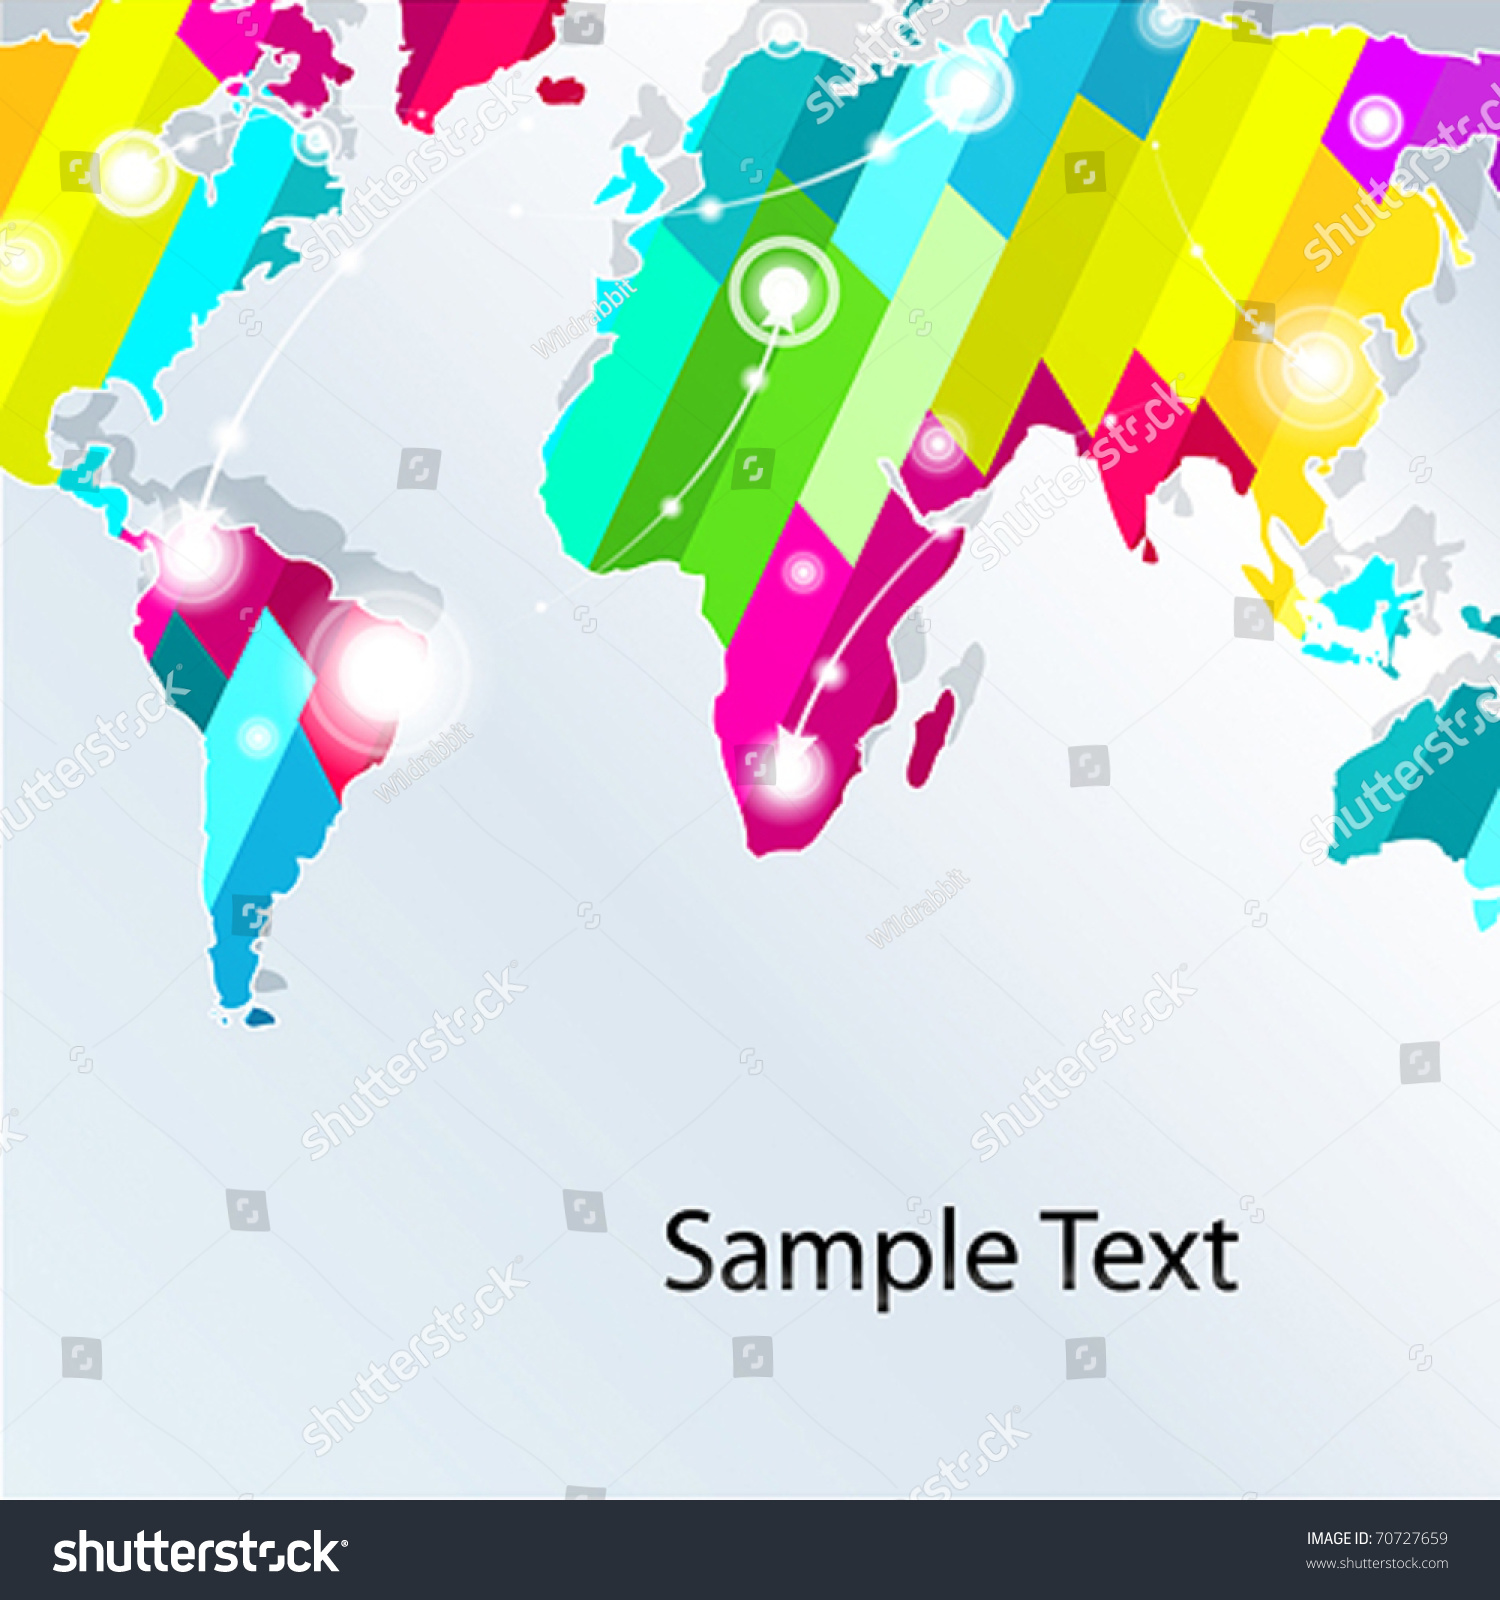 World map vector creative background business stock vector 70727659 world map vector creative background business stock vector 70727659 shutterstock gumiabroncs Image collections